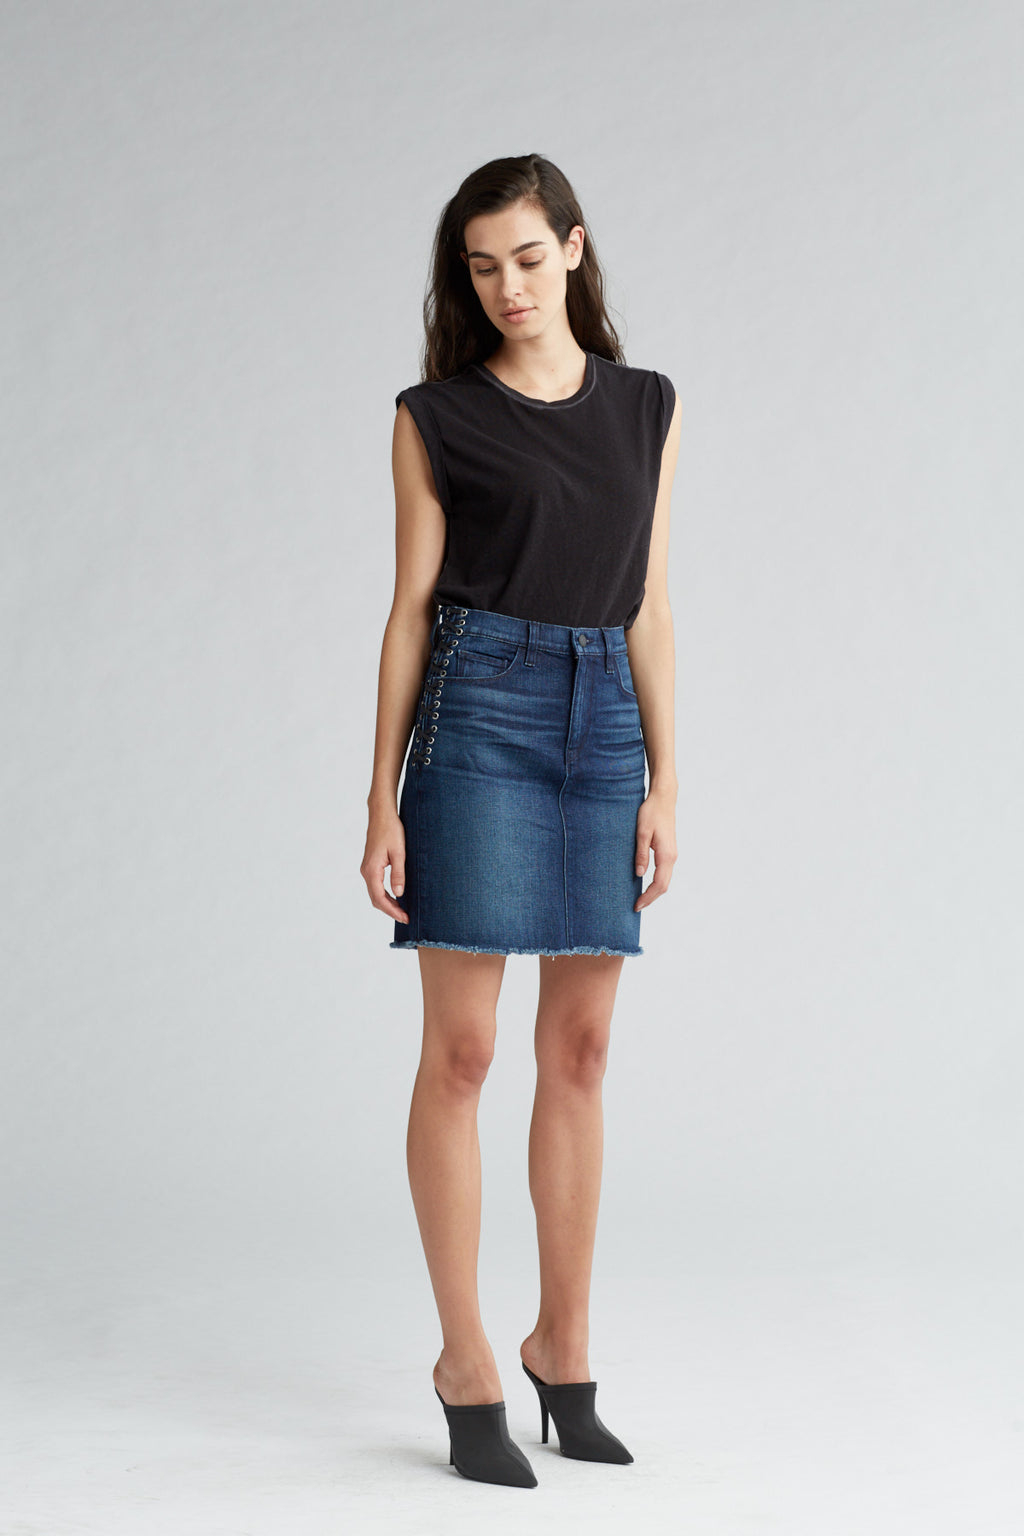 LULU DENIM PENCIL SKIRT - NIGHTFALL - Image 2